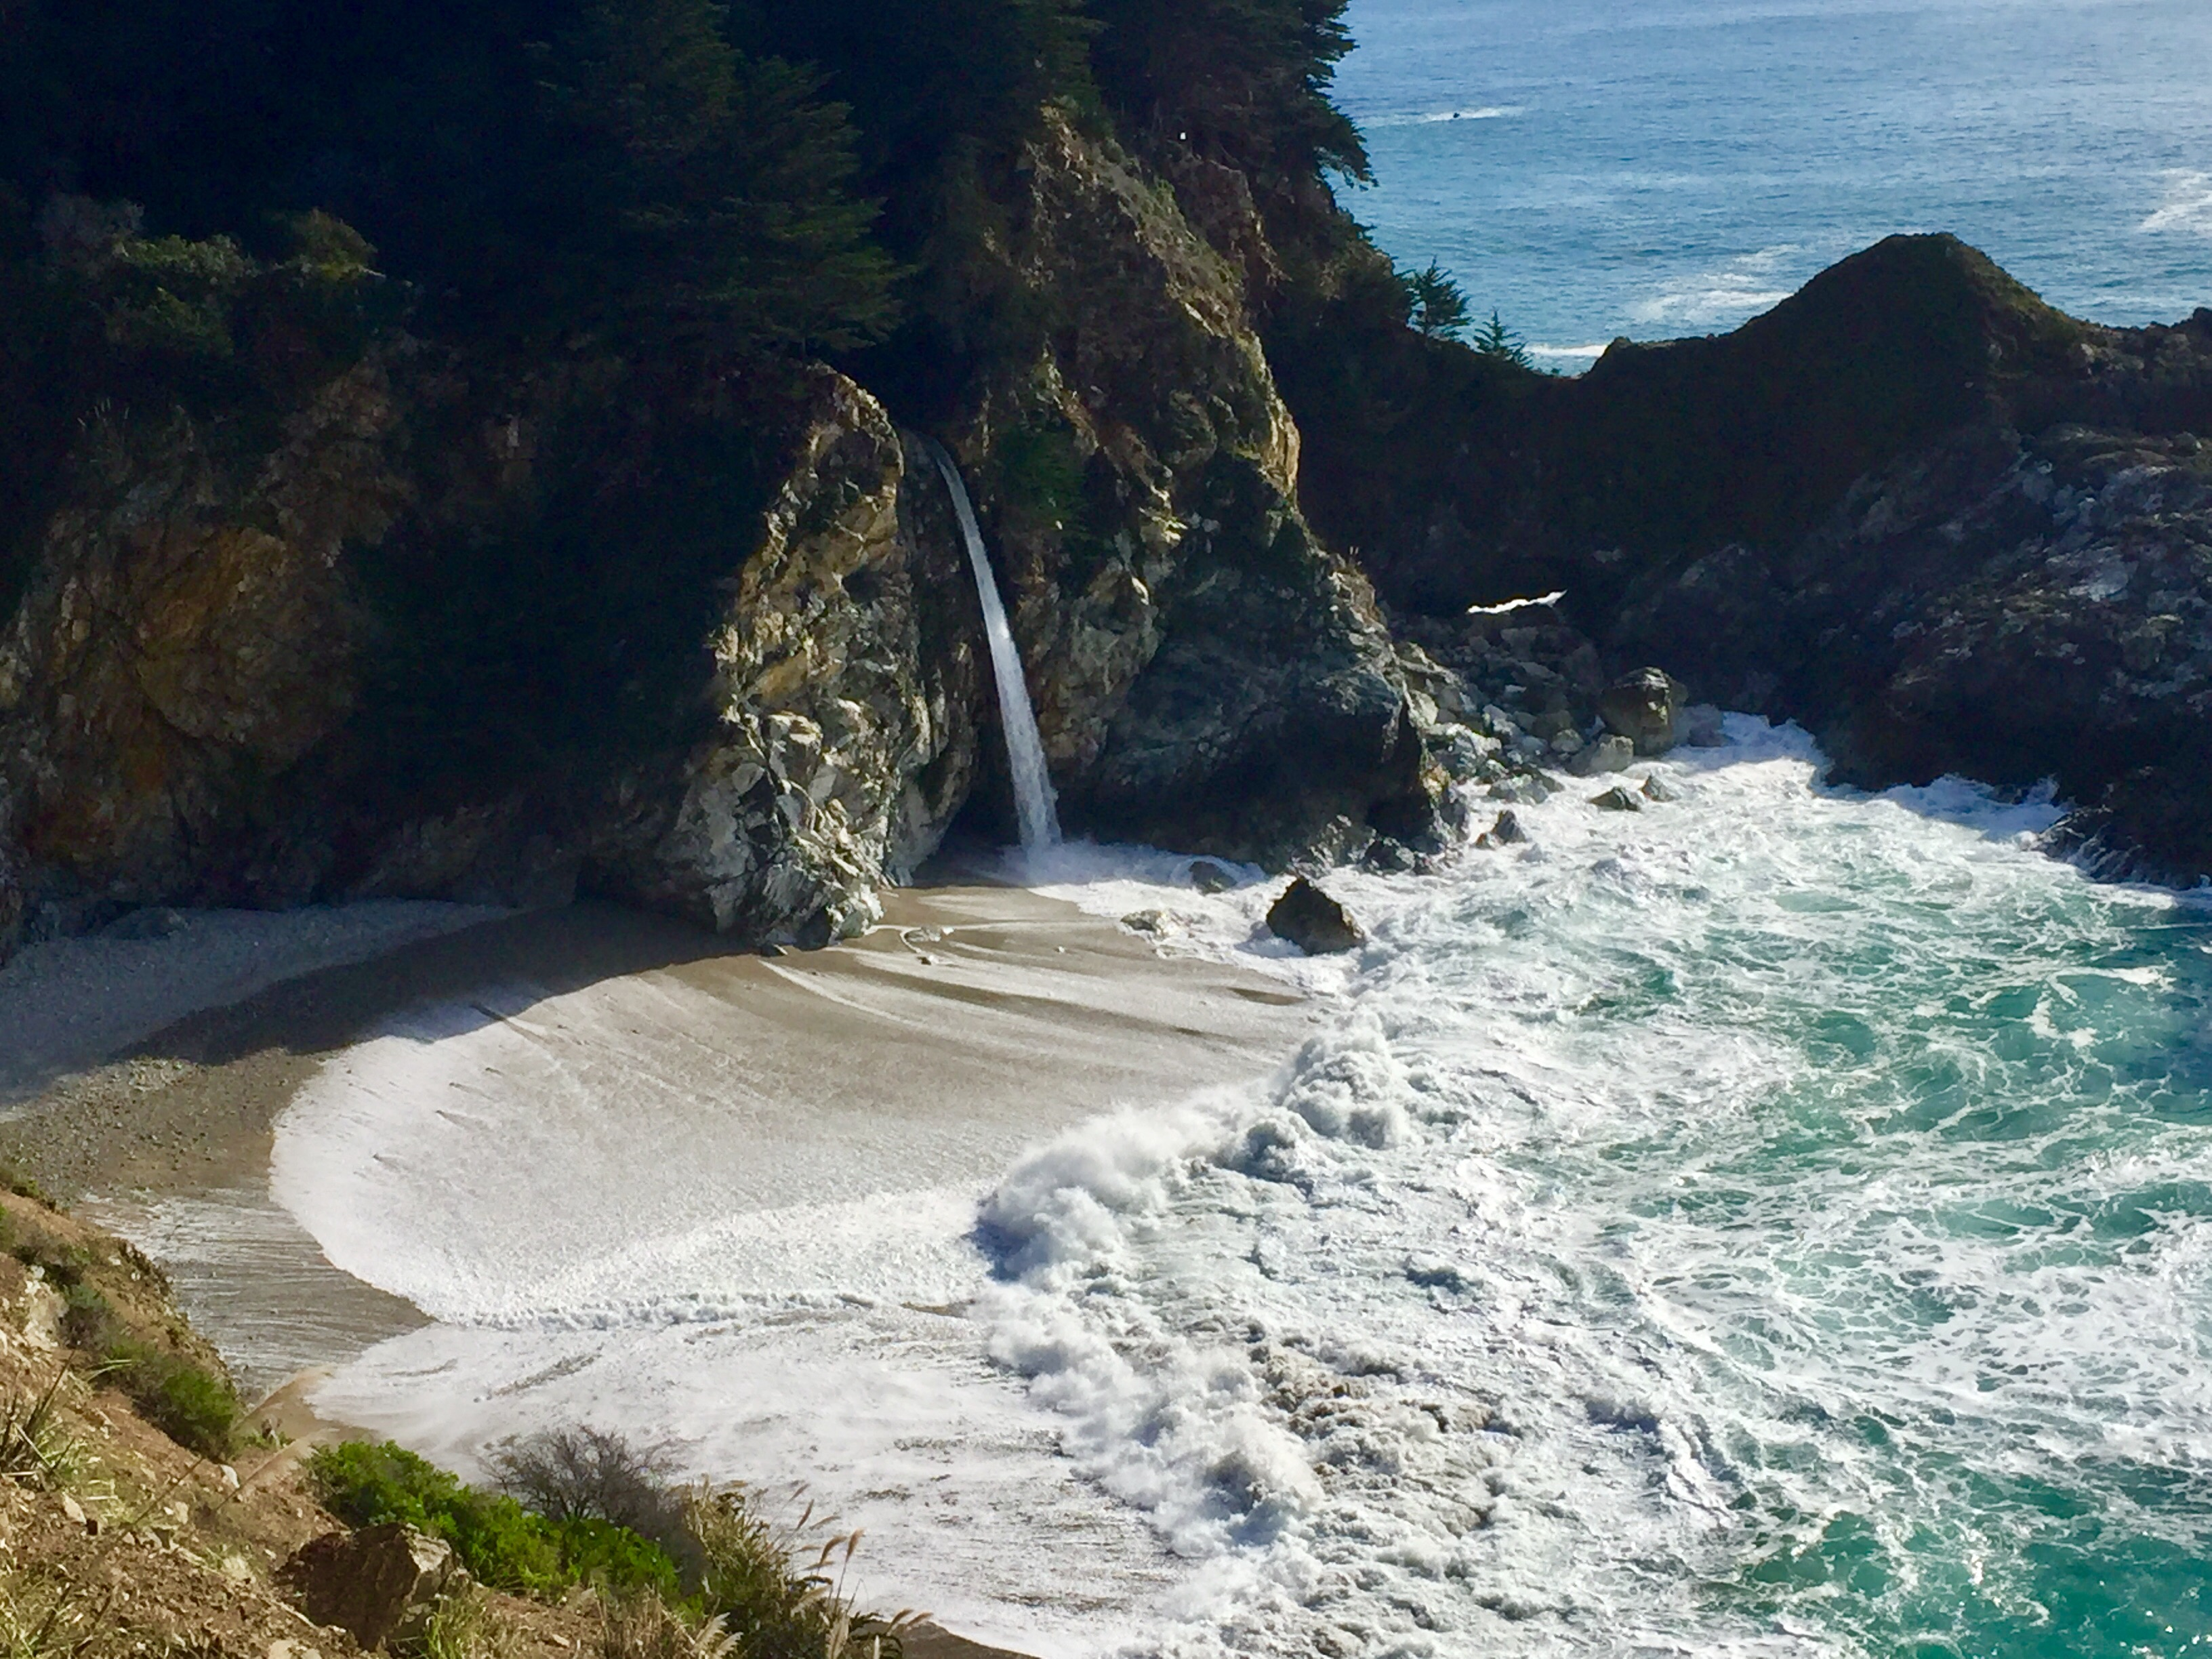 Big Sur, rugged cliffs and misty coastline